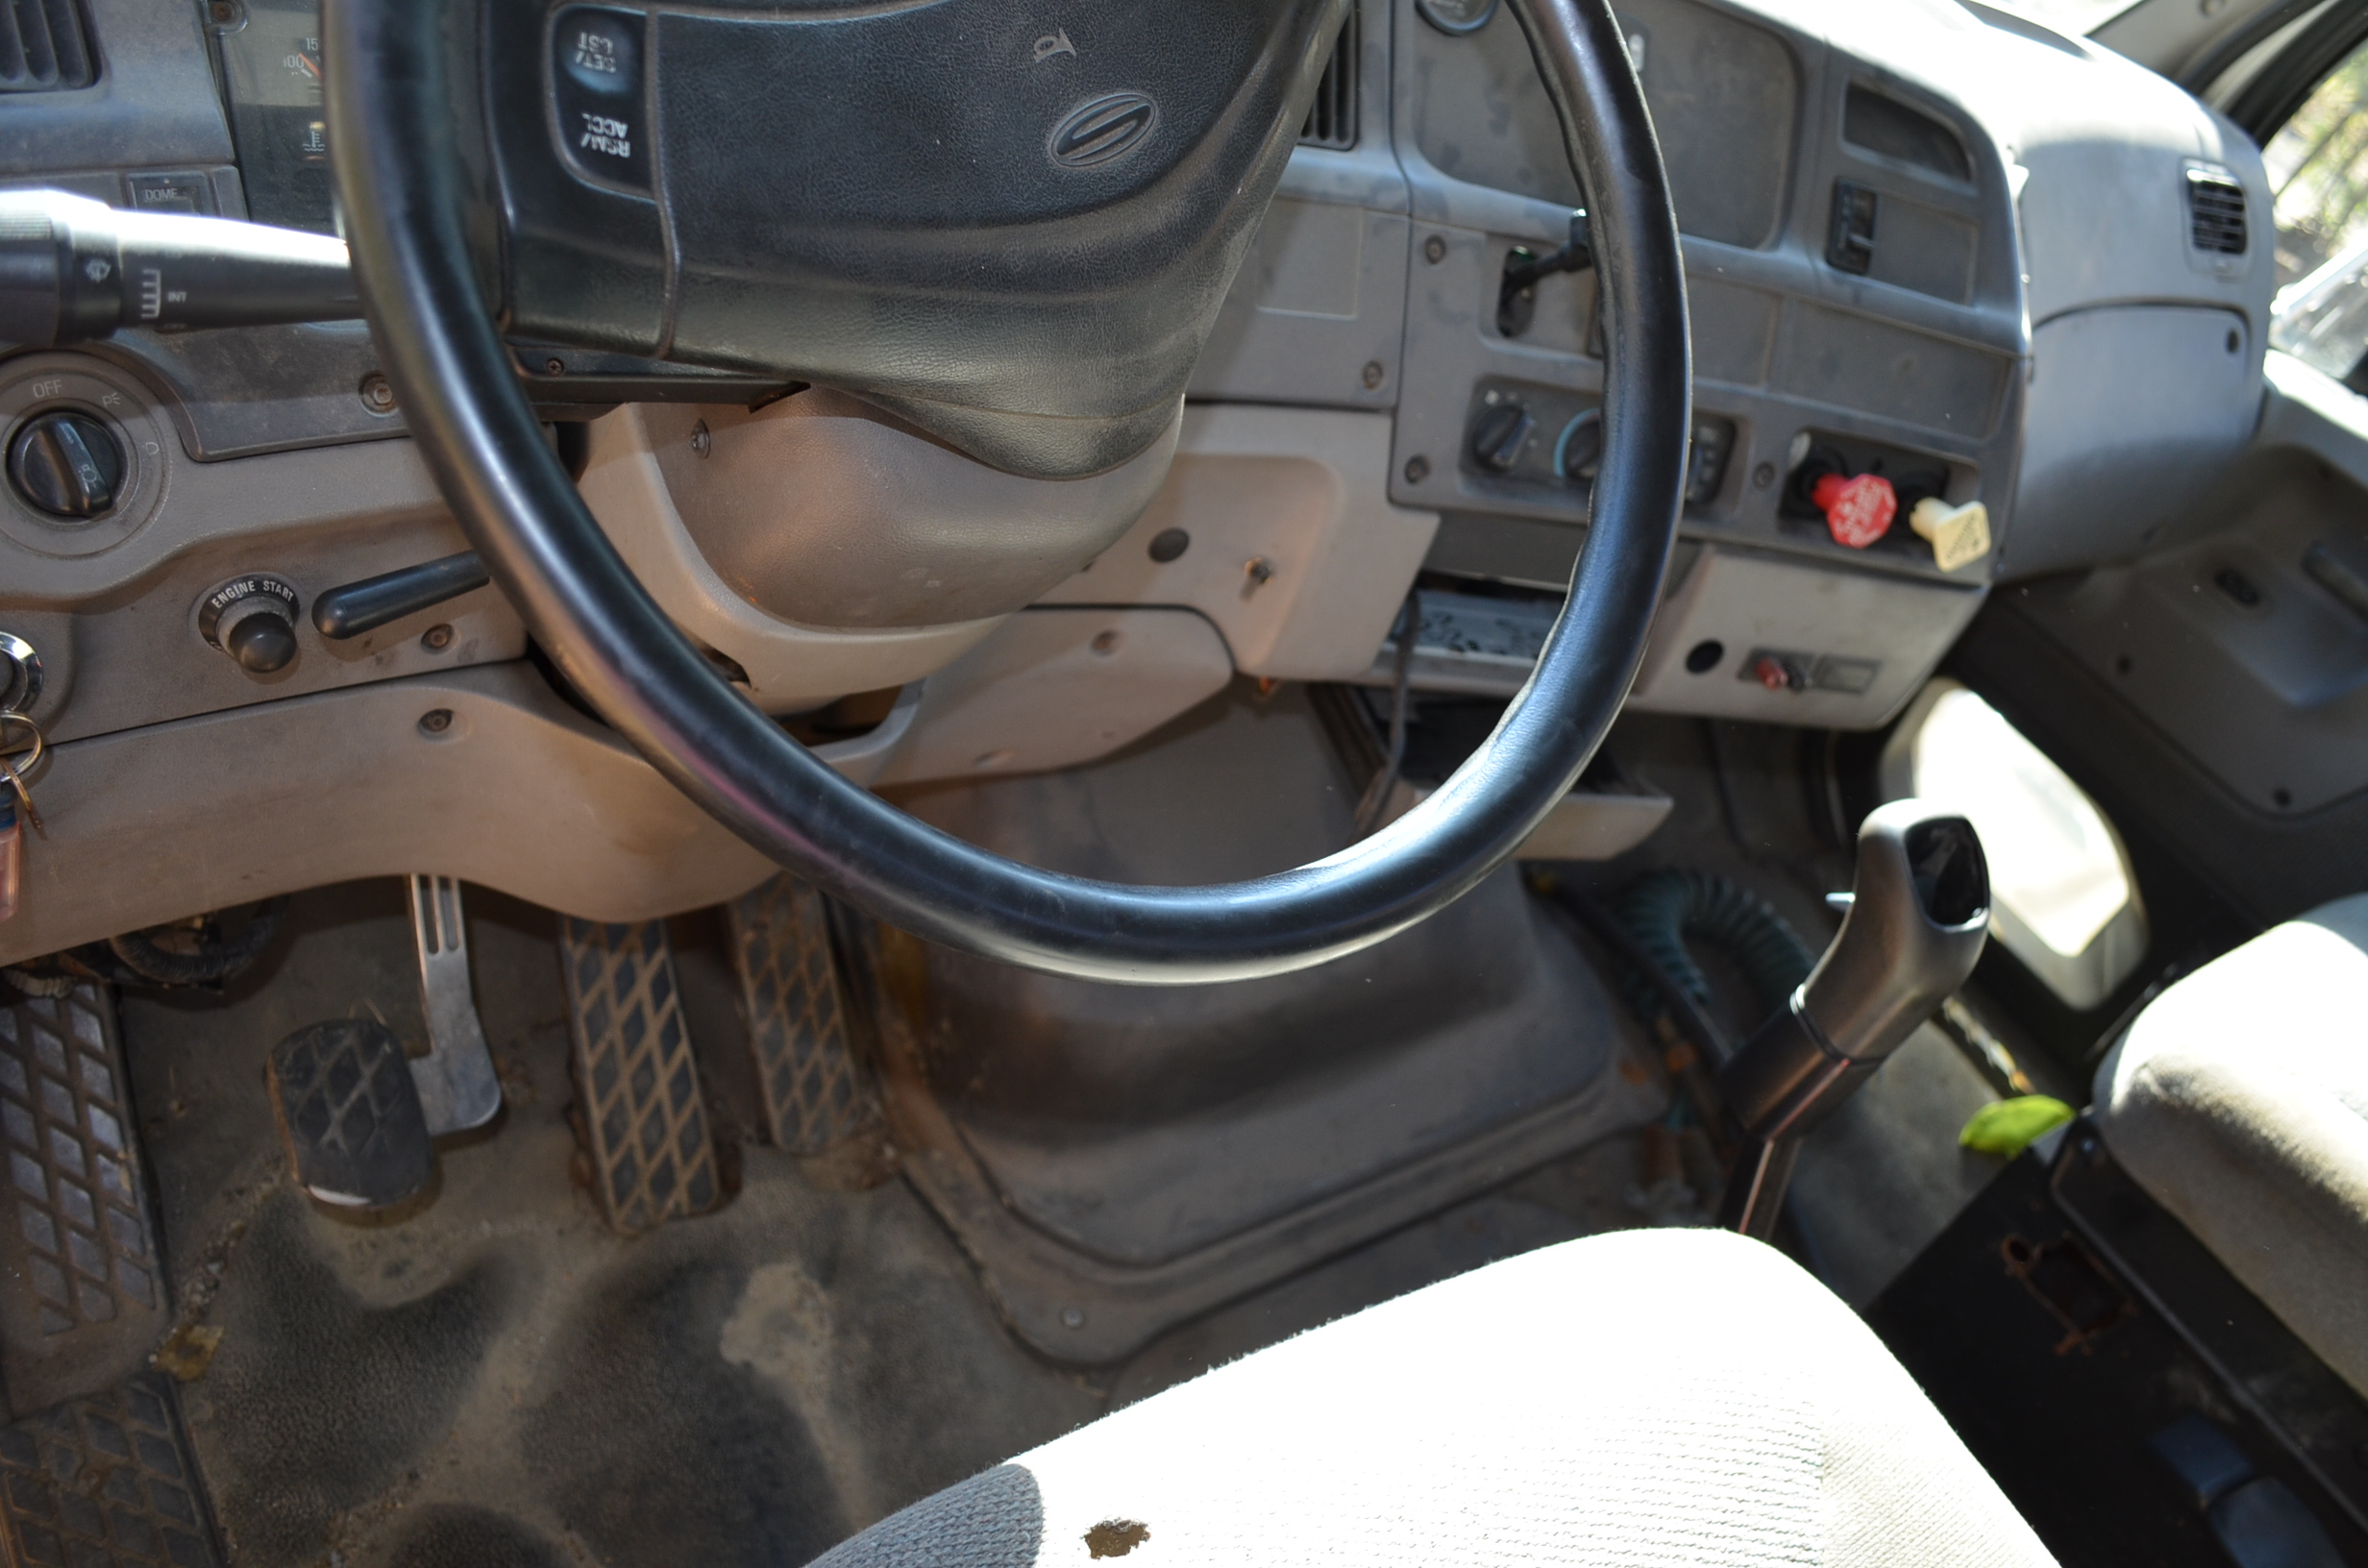 Cab interior of Ford Sterling